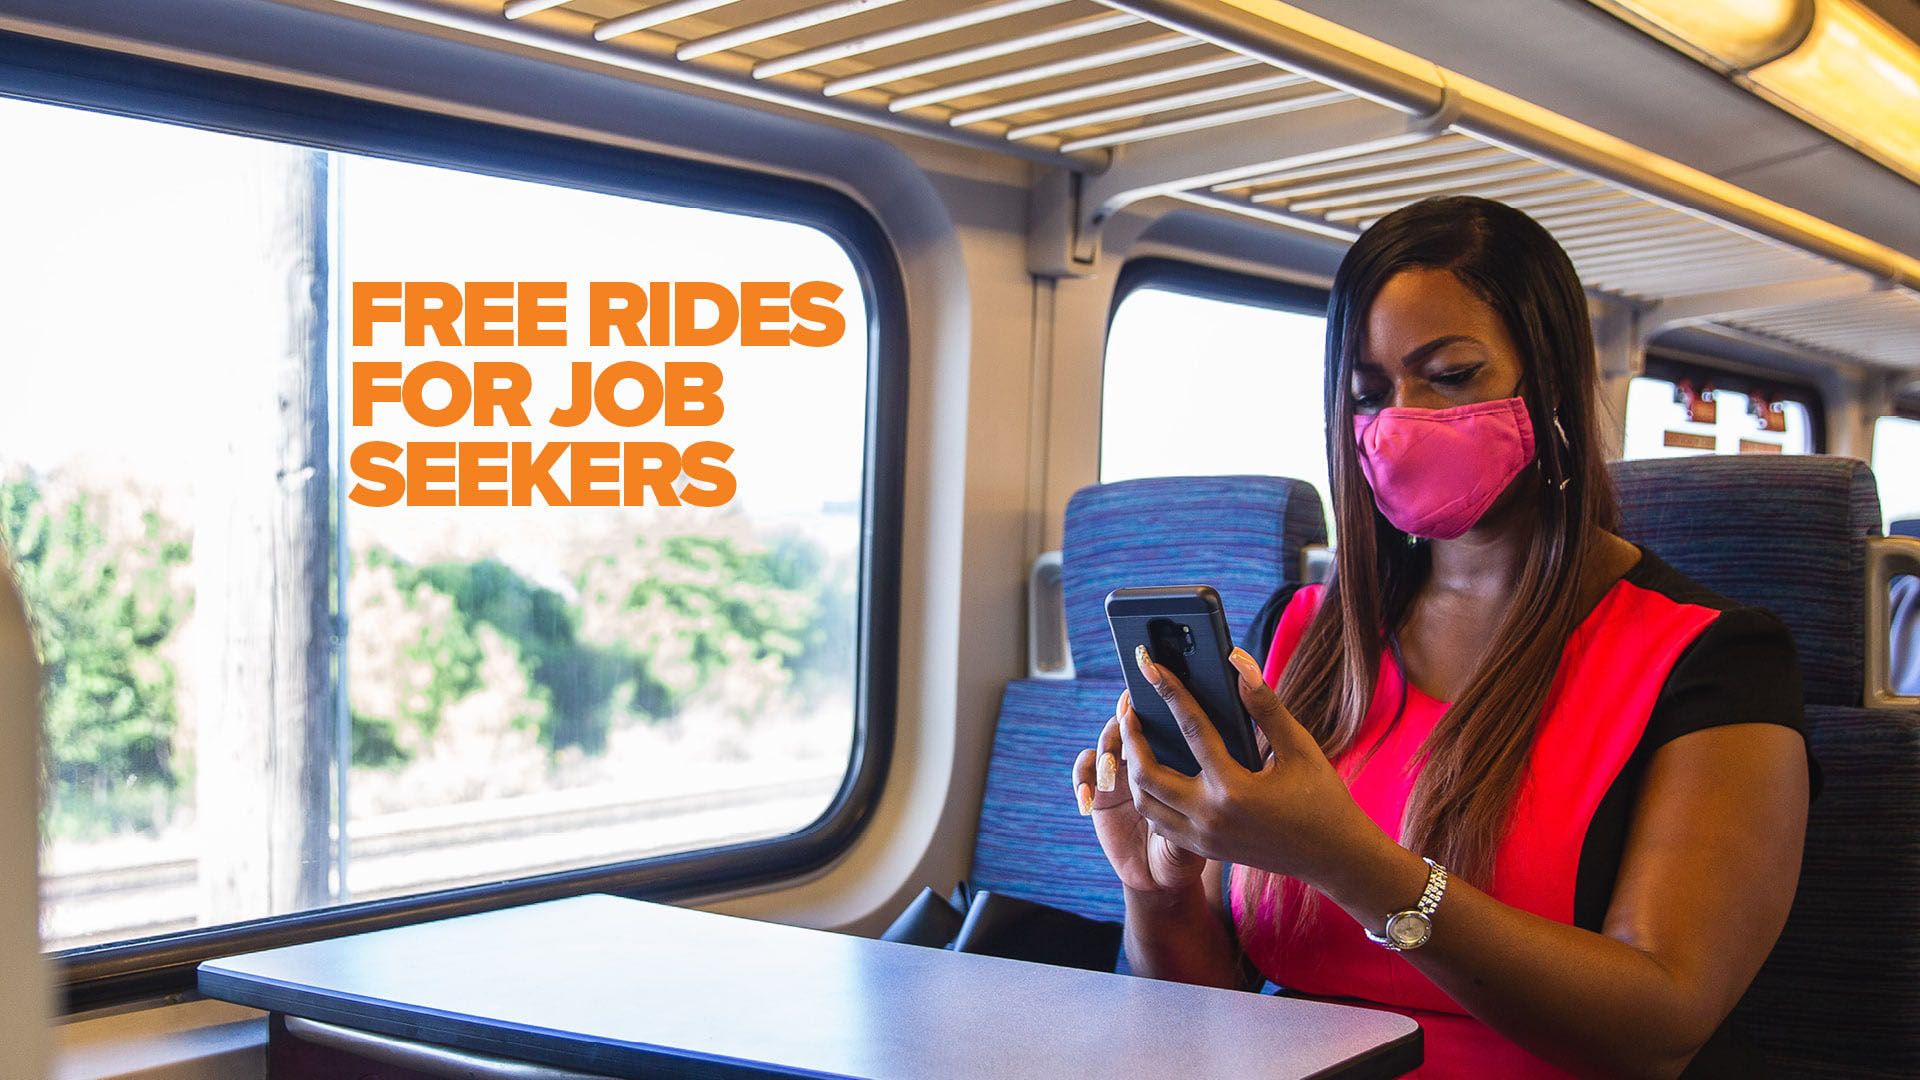 Trinity Metro Offers Free Rides for Job Seekers